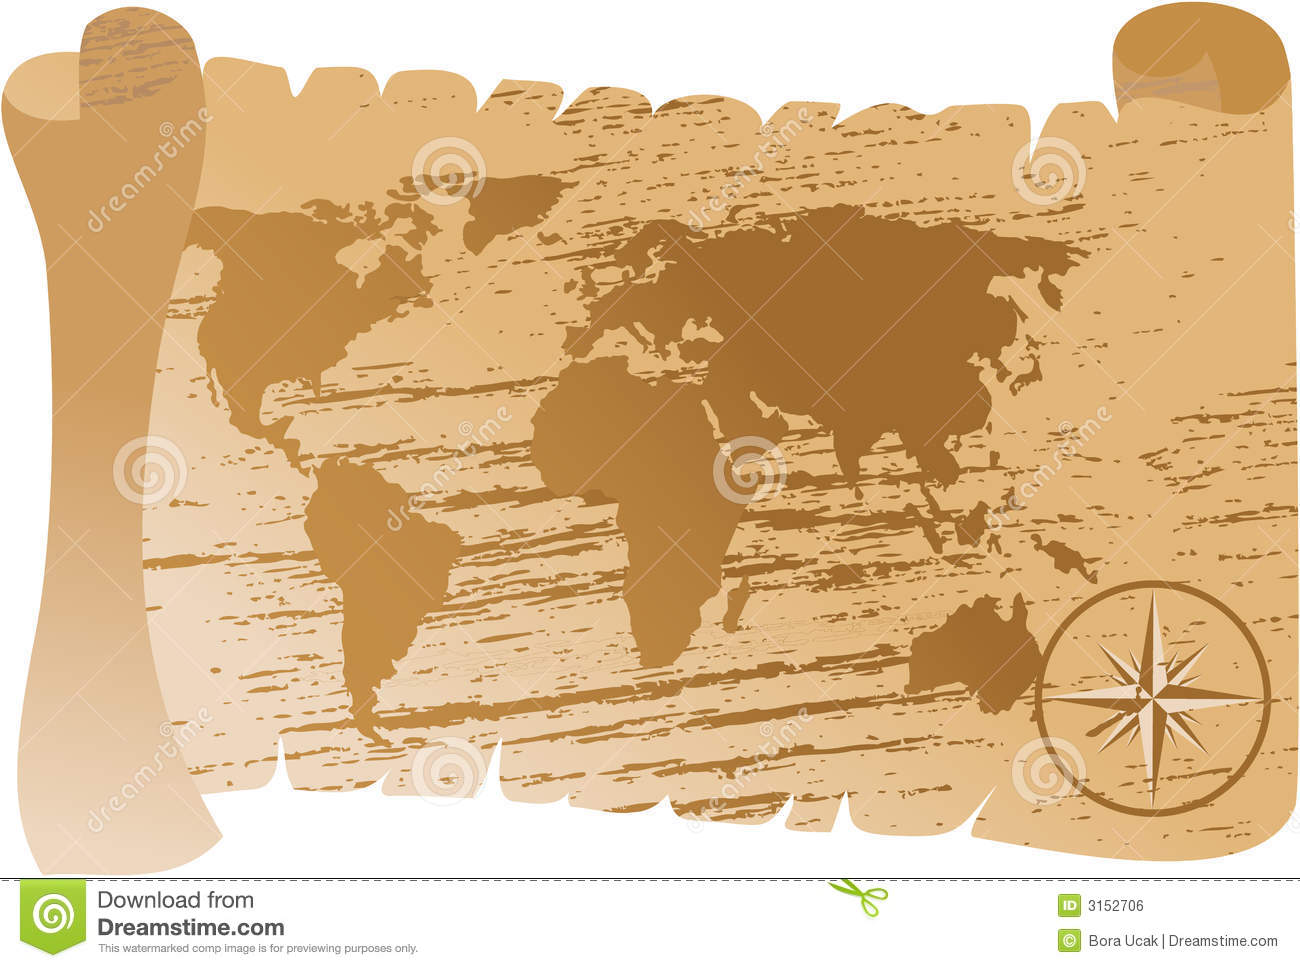 Old world map vector stock vector illustration of page 3152706 old world map vector gumiabroncs